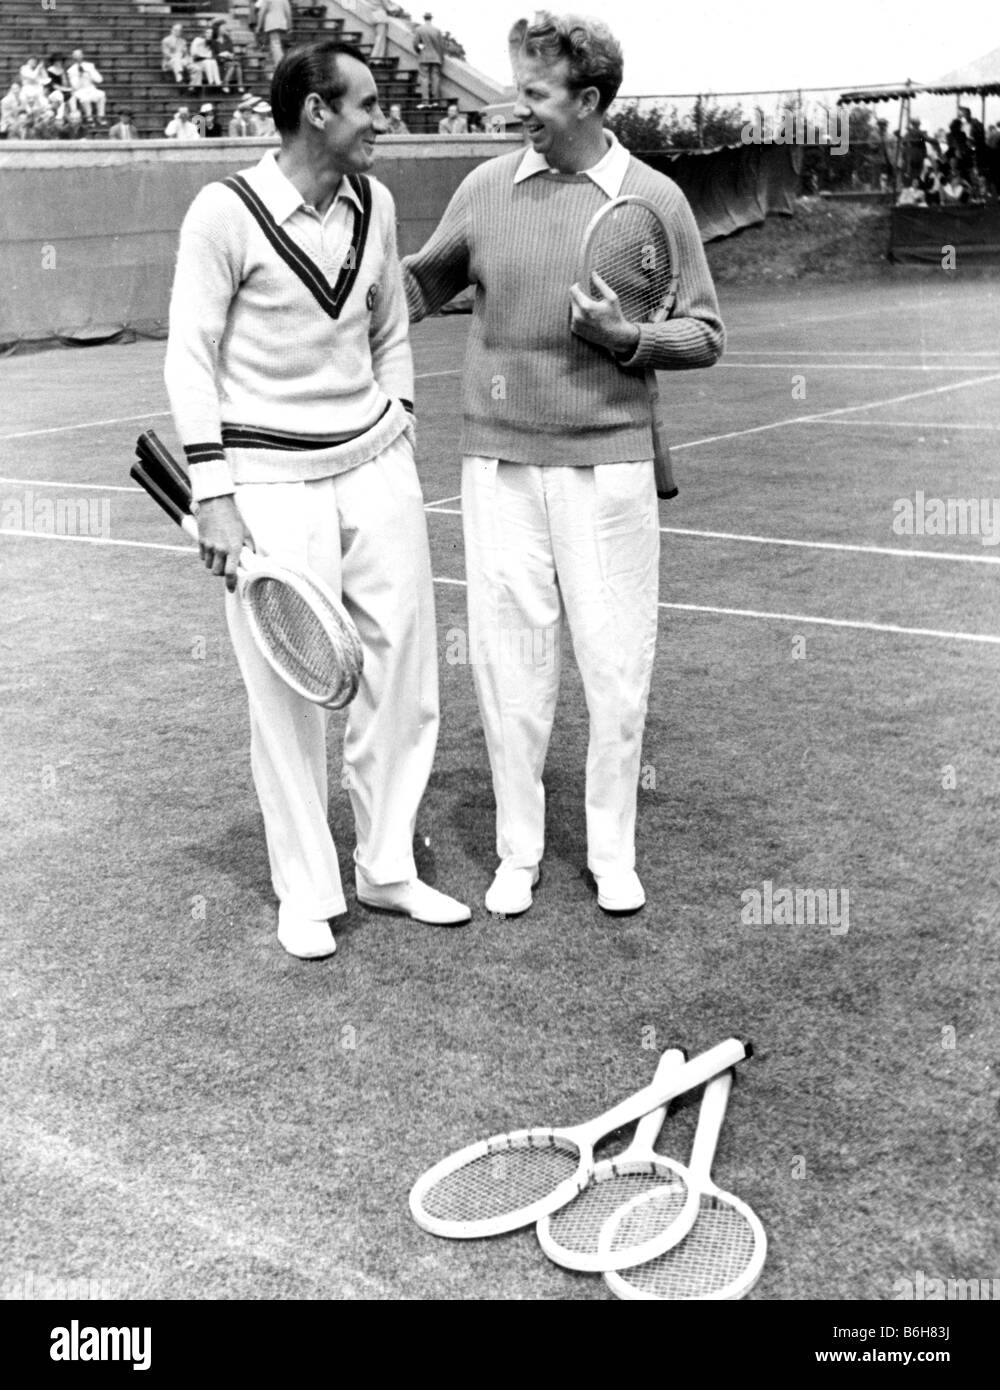 FRED PERRY at left and Donald Budge - tennis players - Stock Image